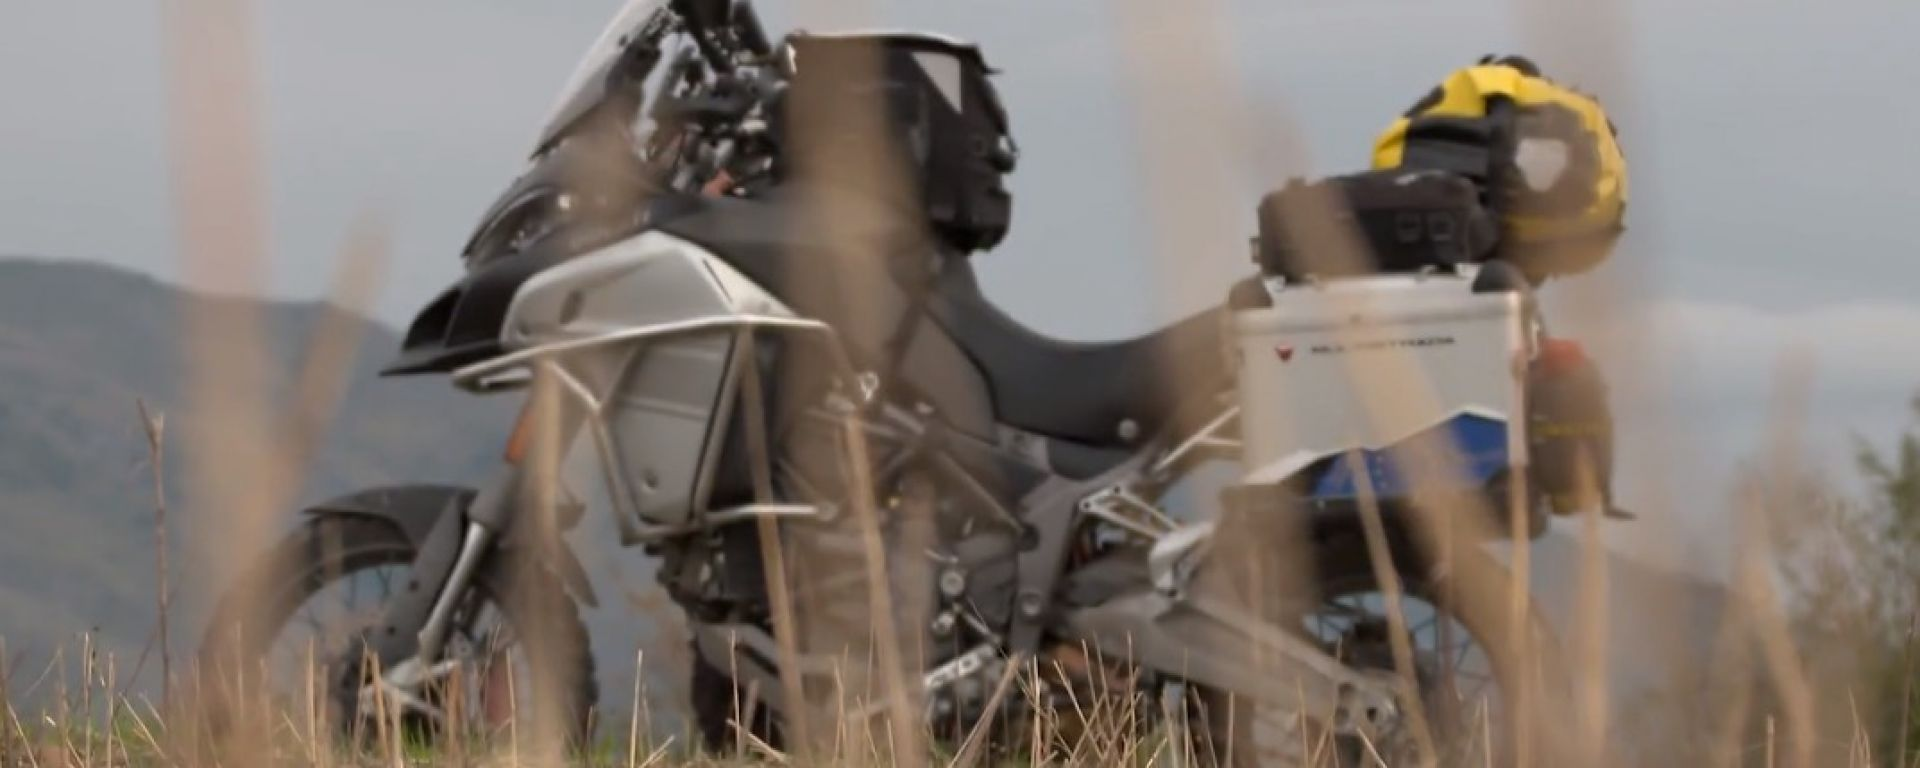 The wild side of Ducati: la Multistrada 1200 Enduro by Touratech